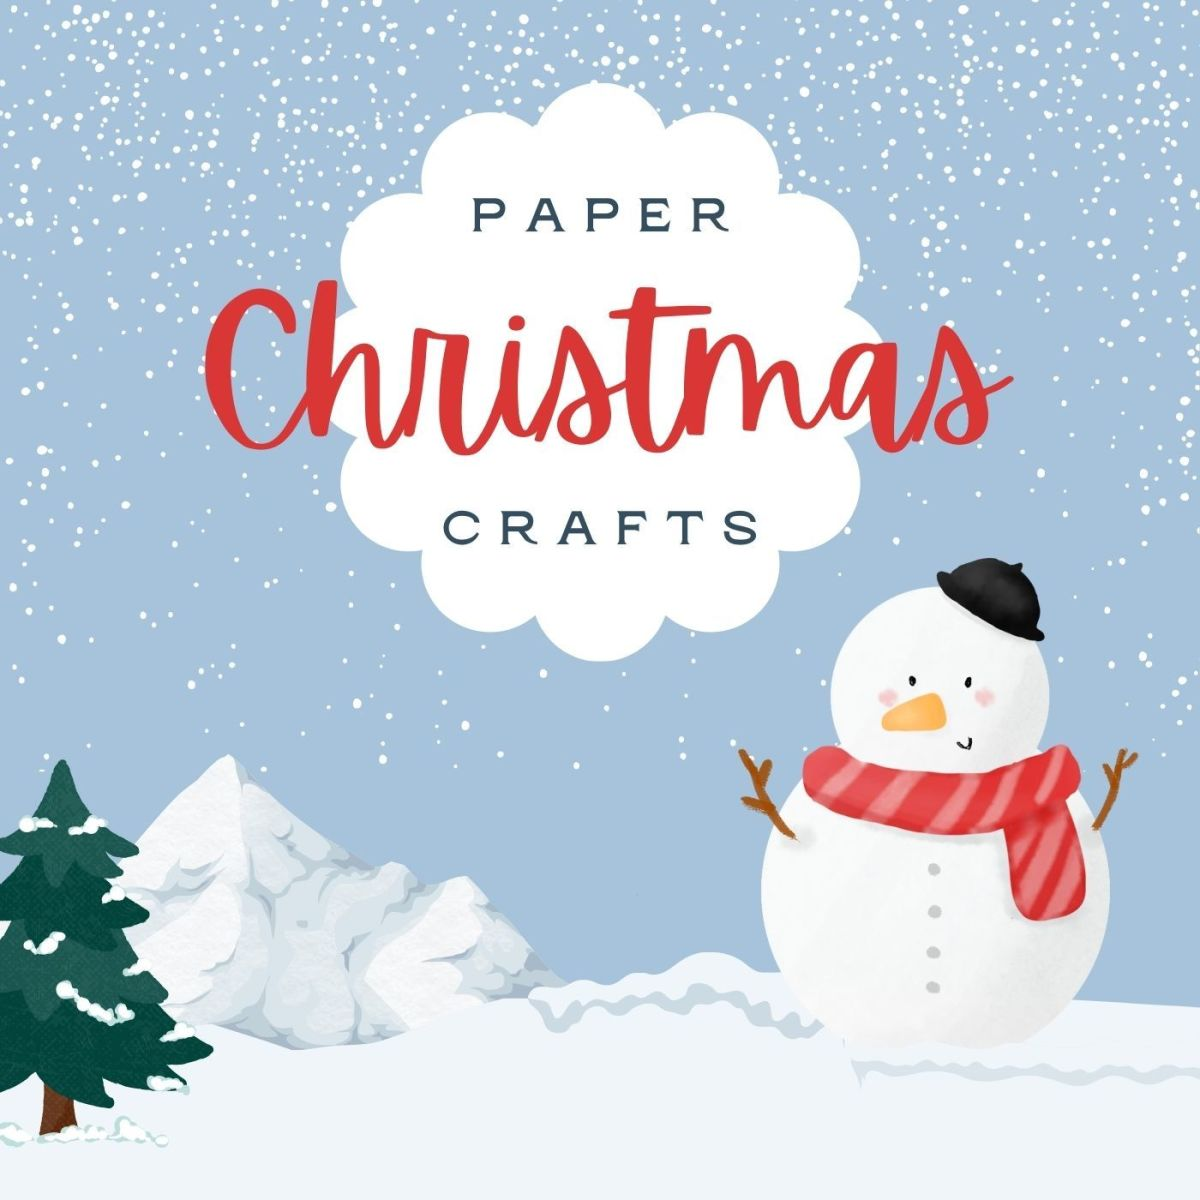 Check out these amazing Christmas craft ideas!